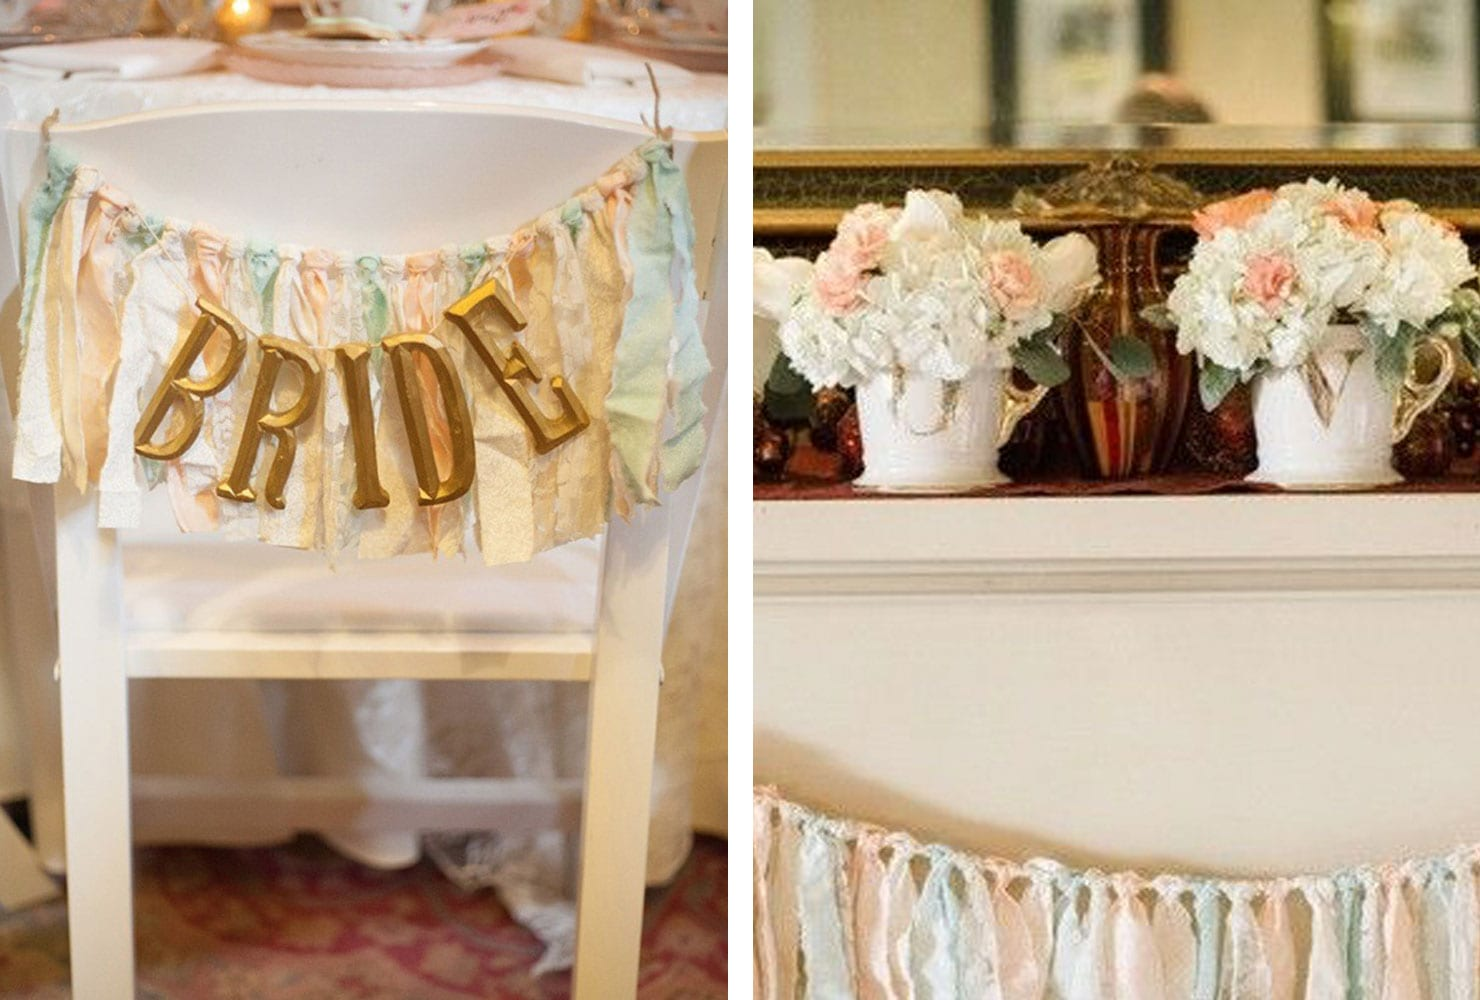 White chair with pastel tassels and 'bride' letters in gold